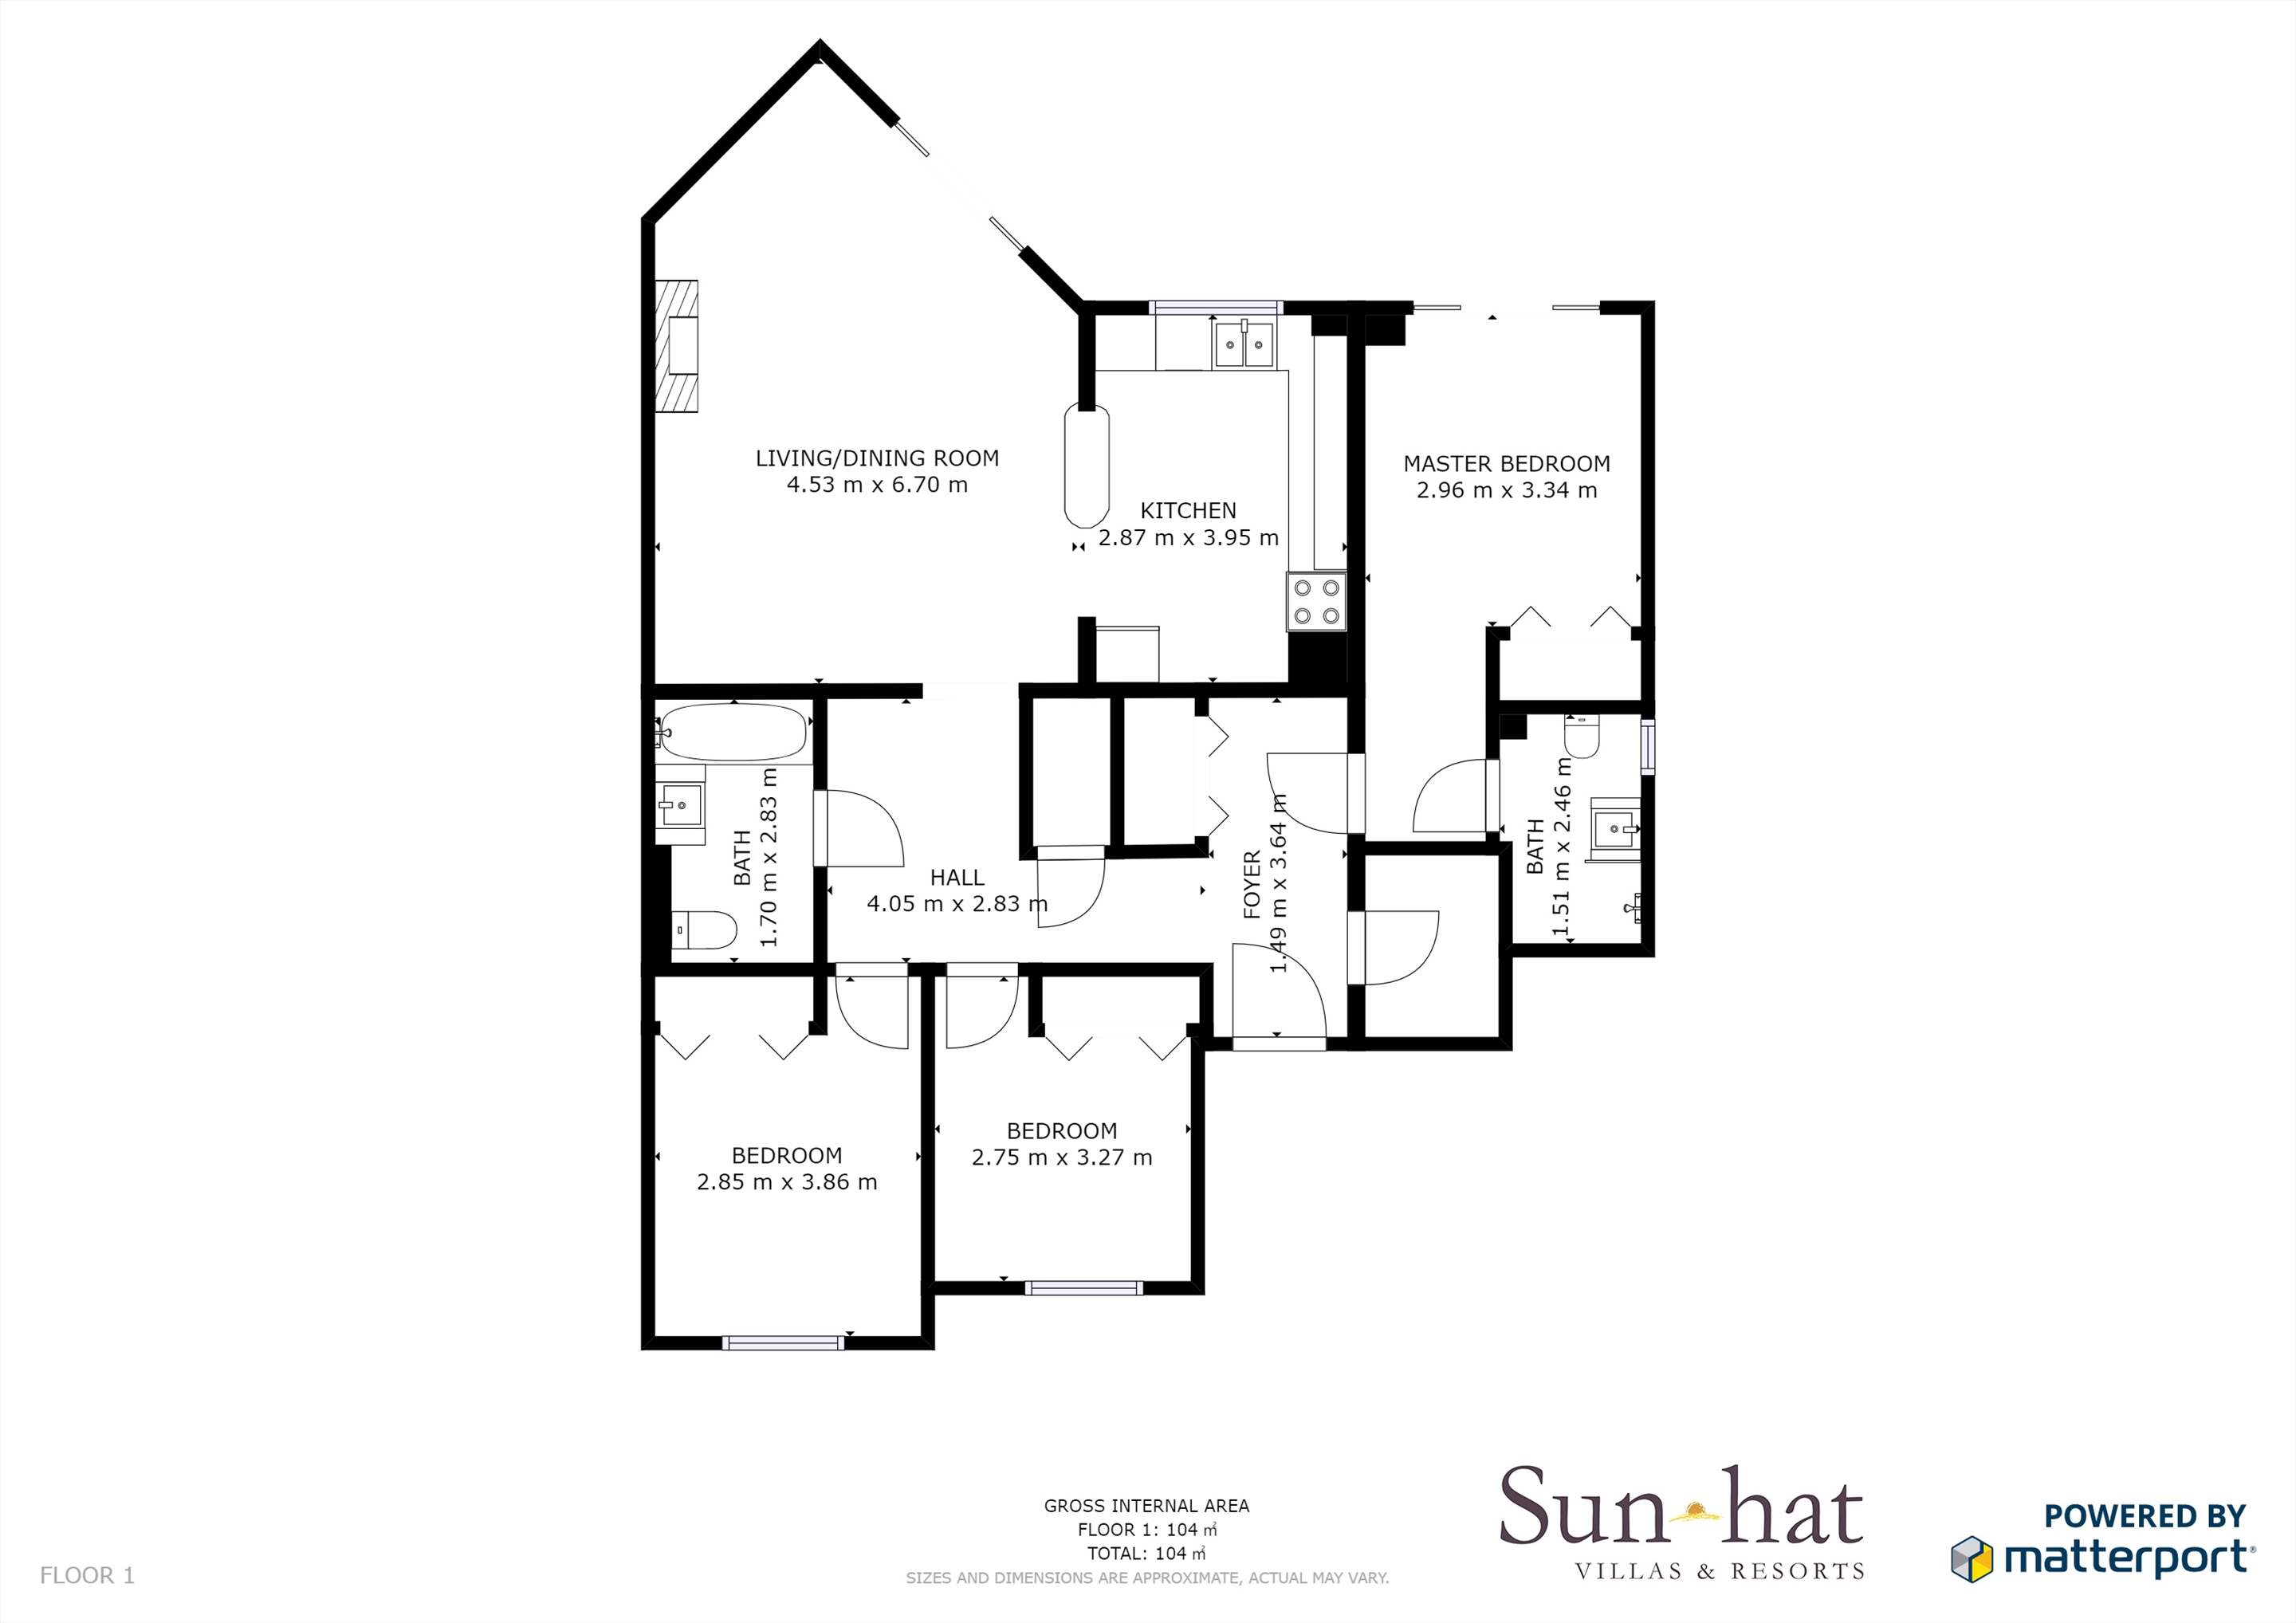 Placid Village, Three Bedroom Apartment Floorplan #2